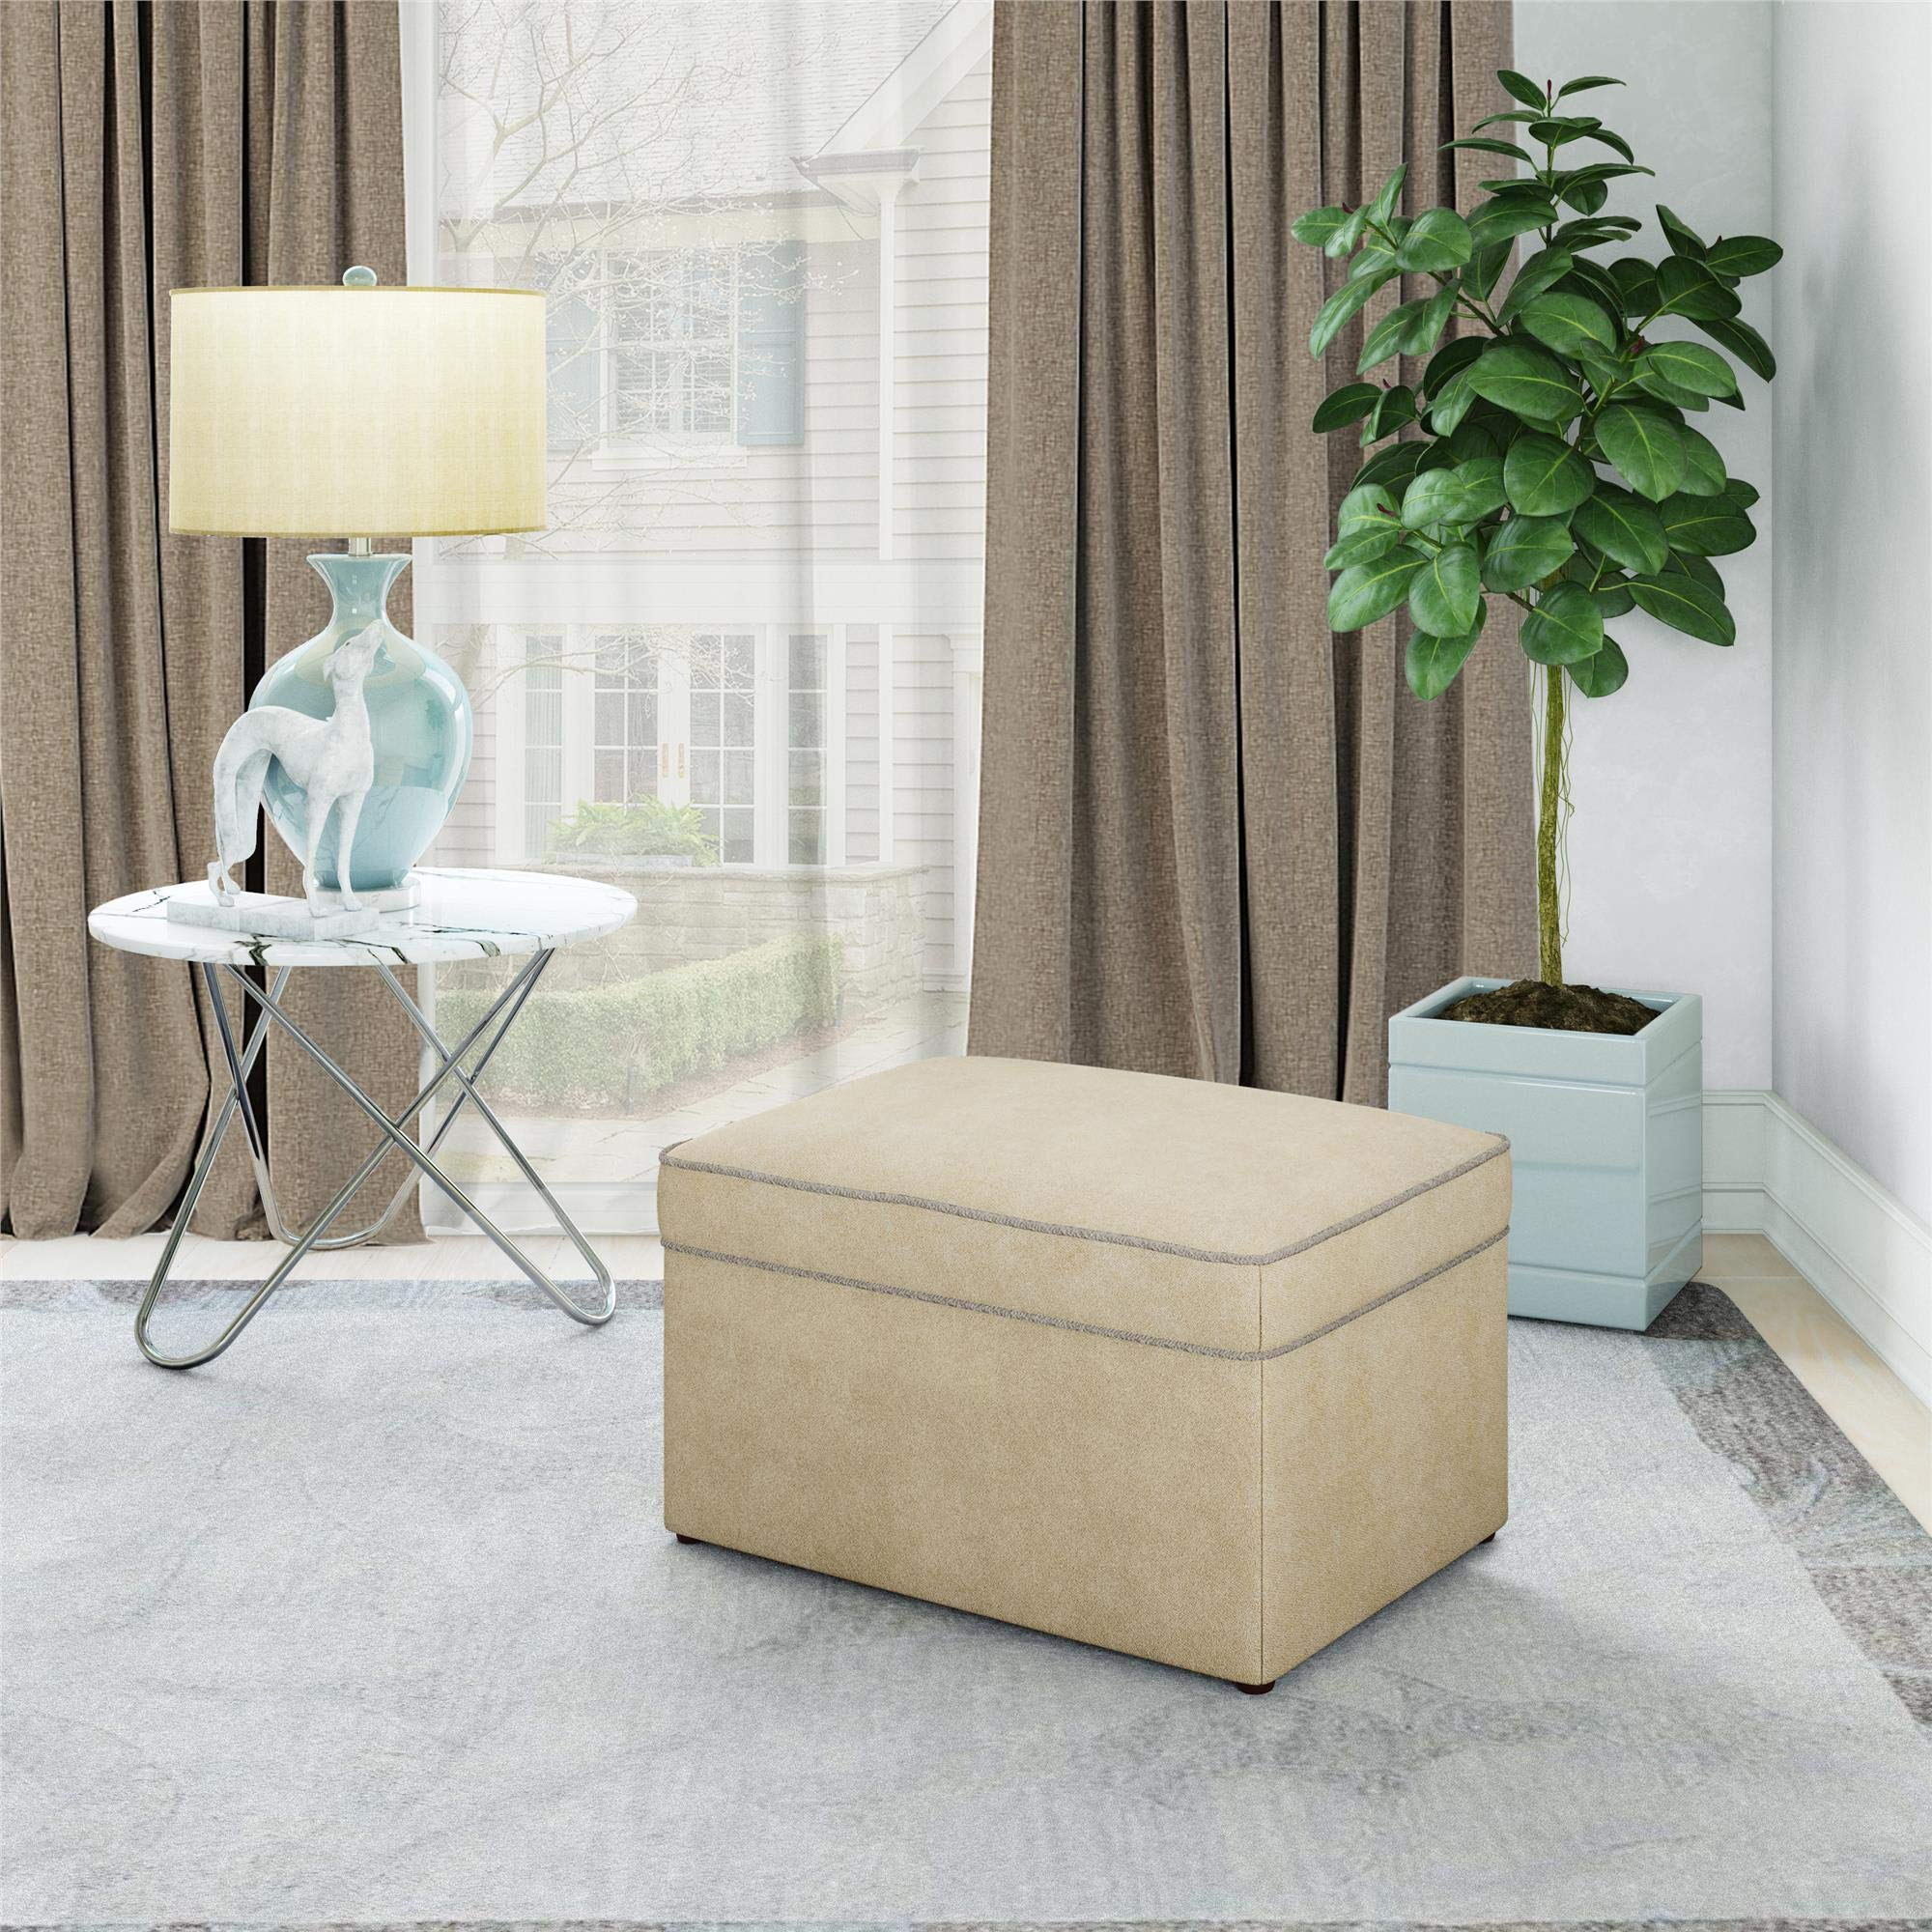 Baby Relax The Hadley Nursery Storage Ottoman for Baby Gliders, Beige Beige by Baby Relax